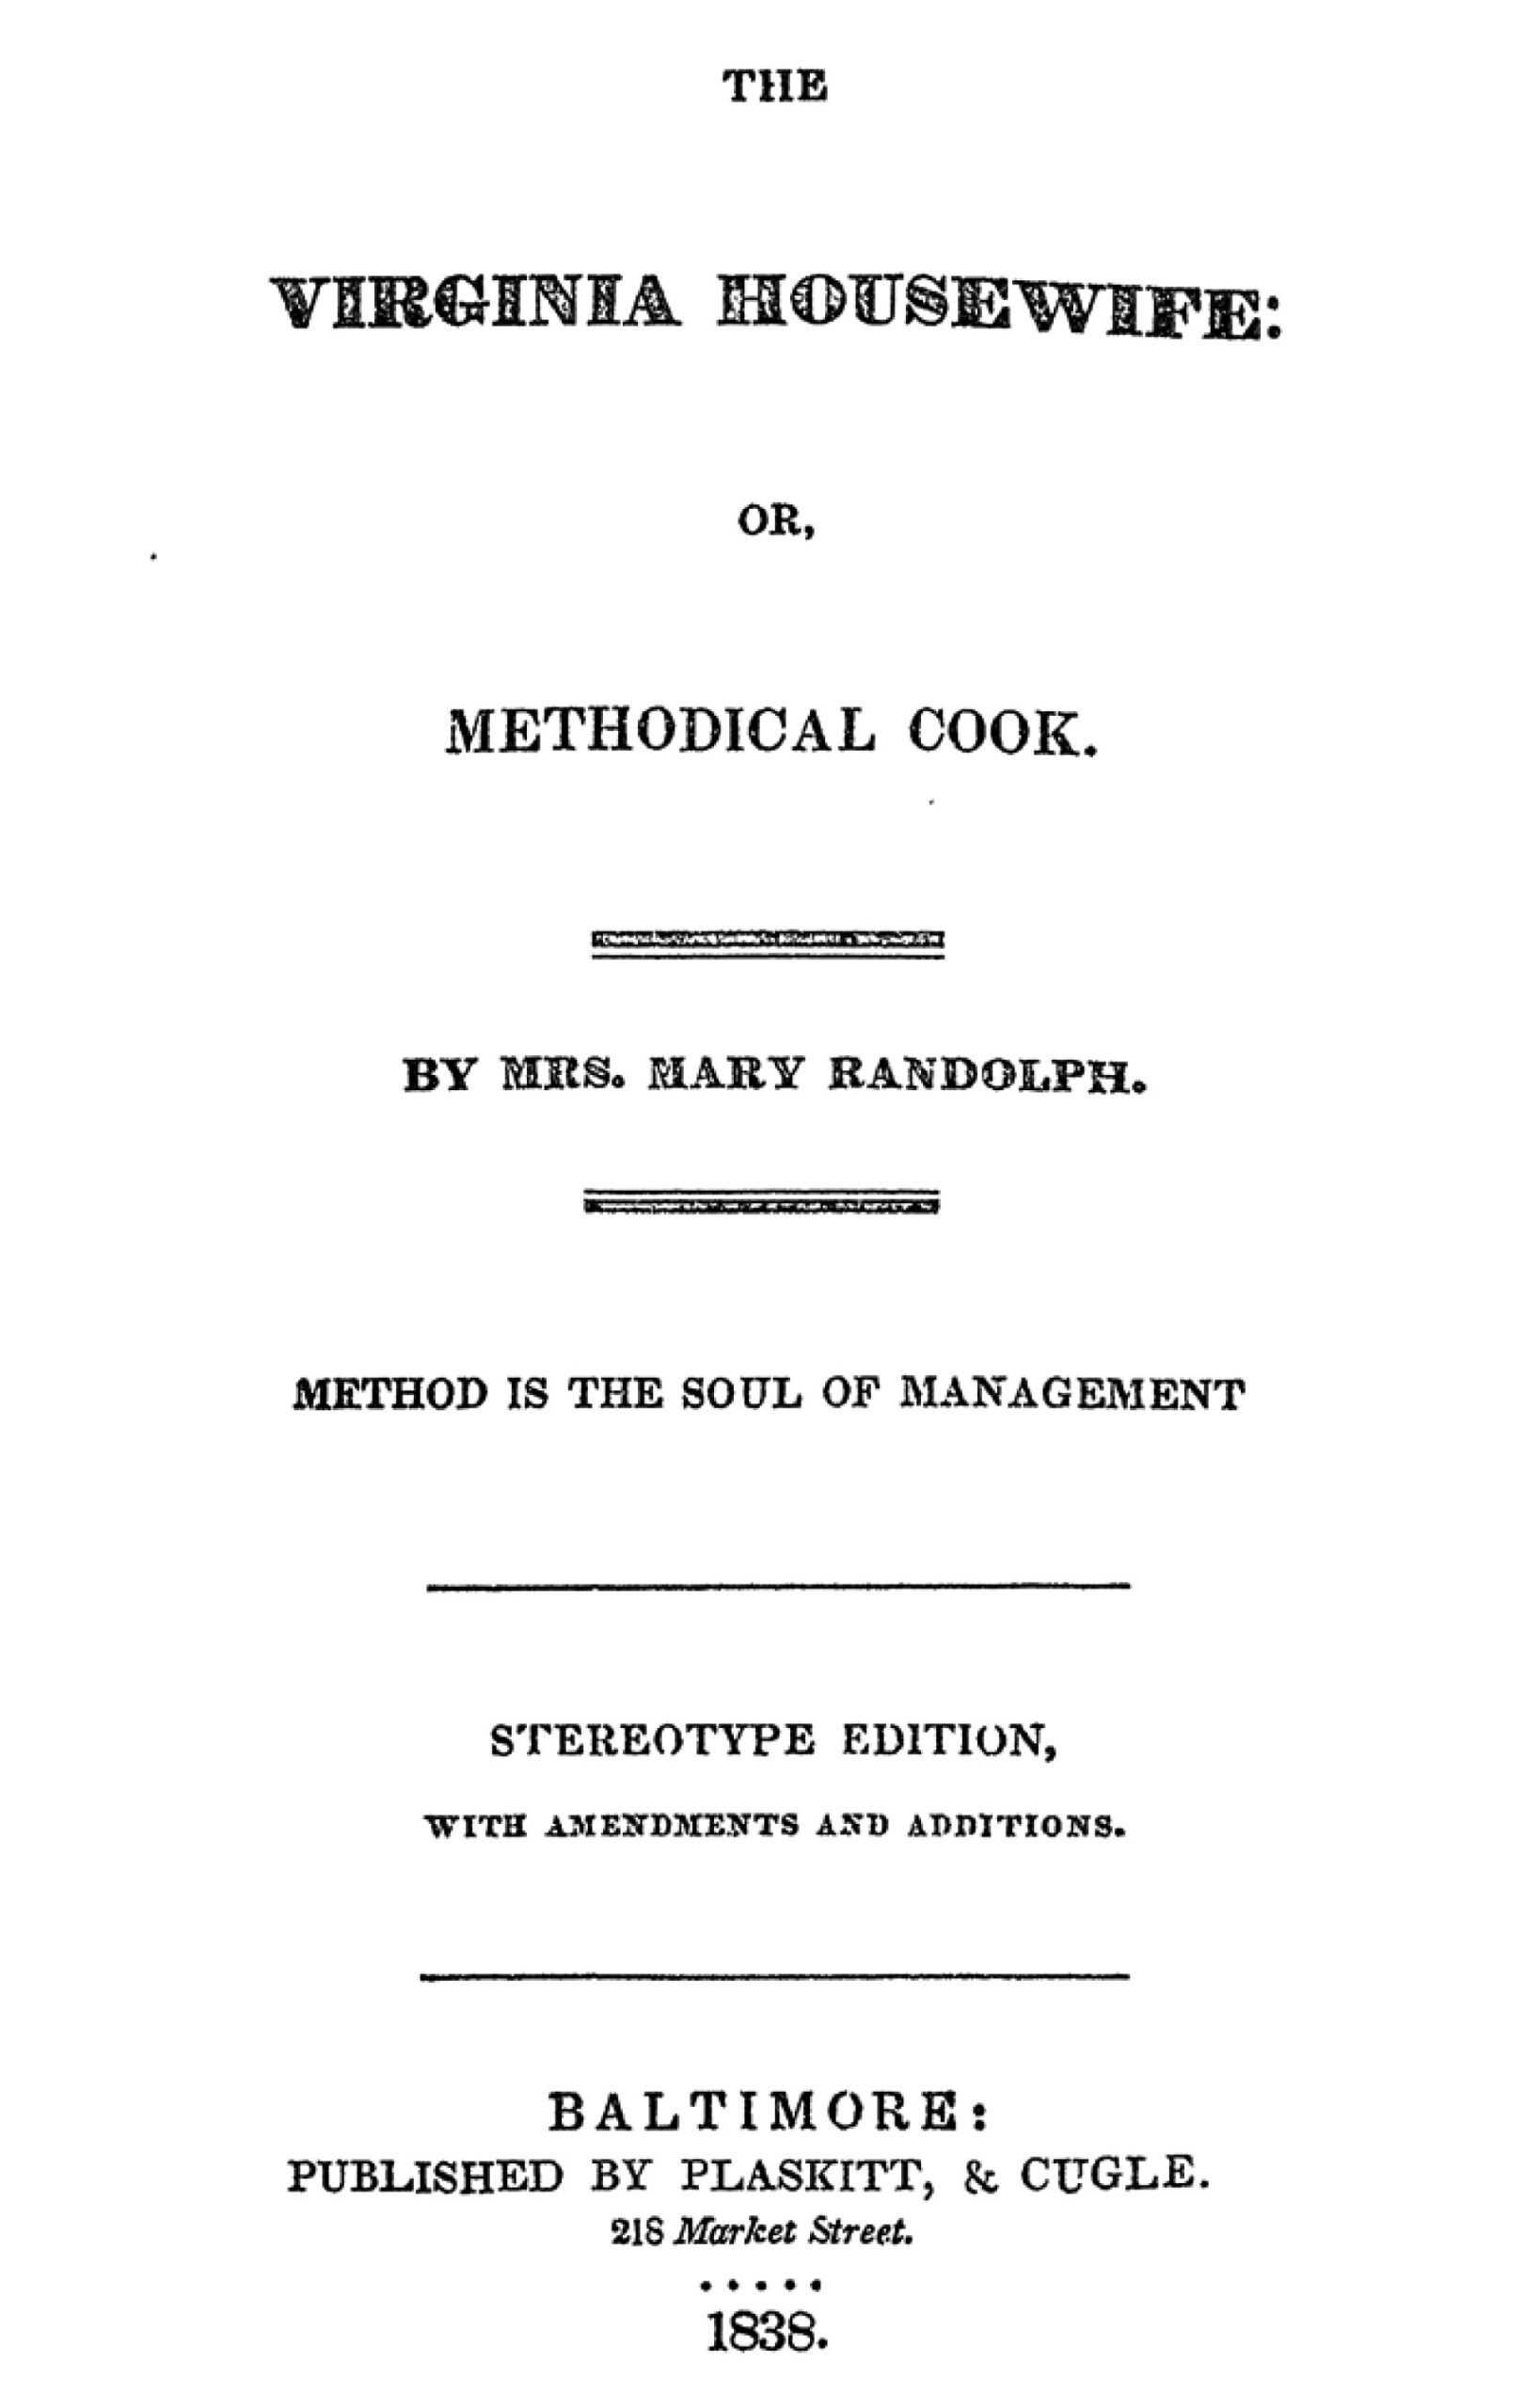 The Virginia Housewife, title page